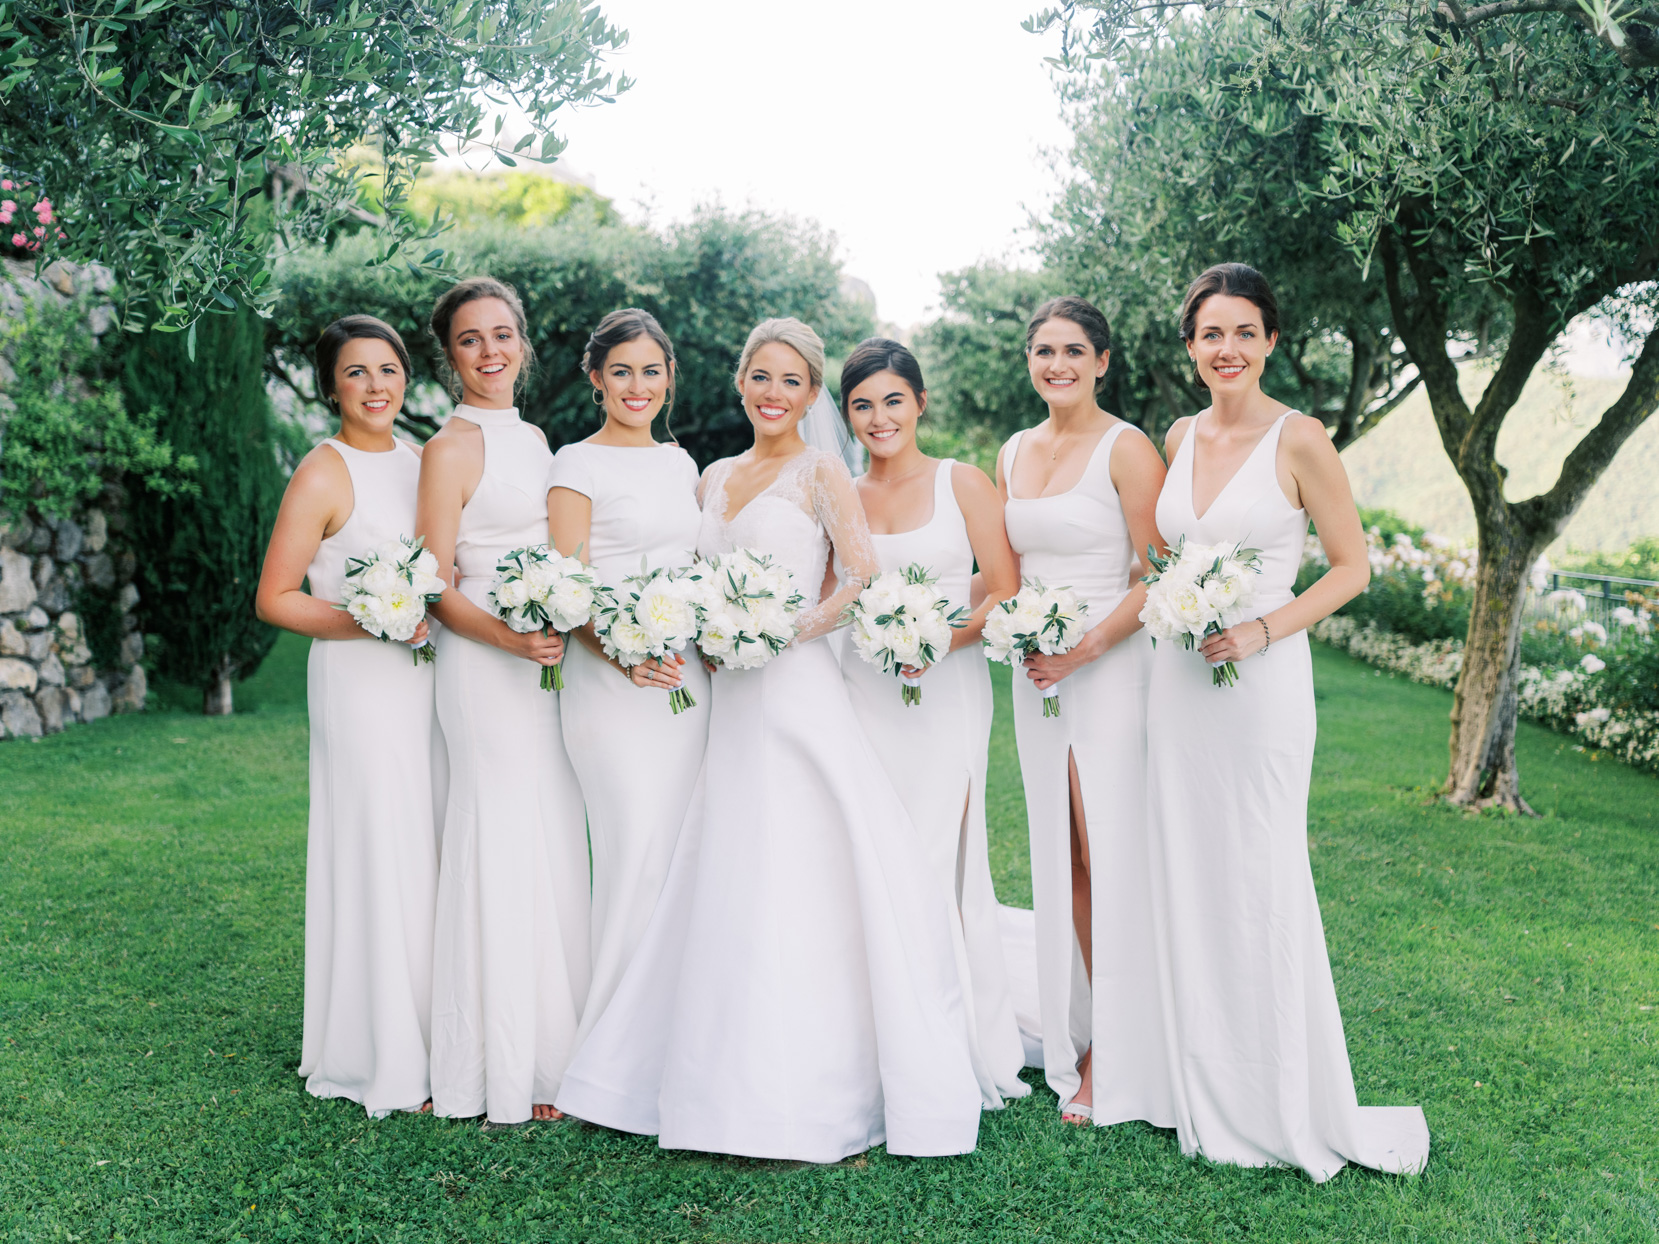 bride and bridesmaids in white dresses